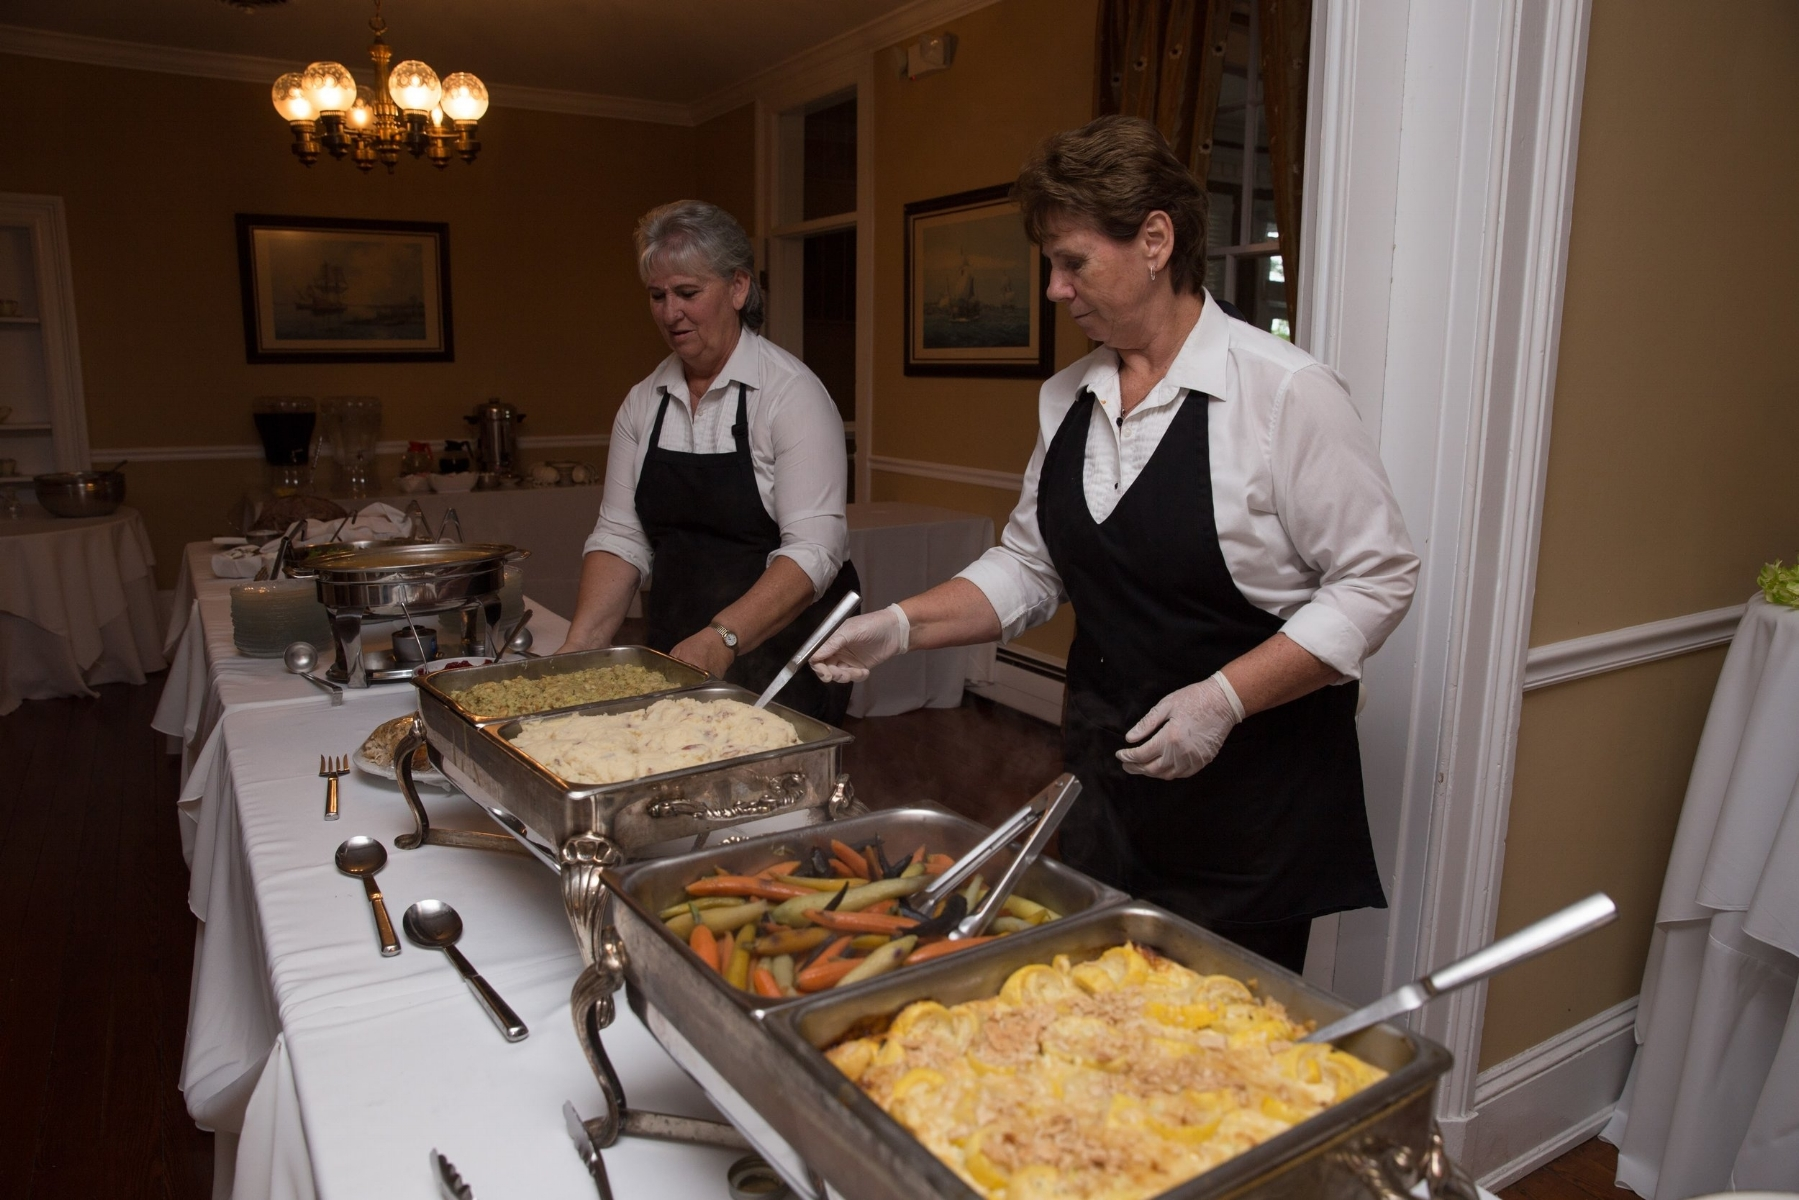 We provide service to fit your event's style, from formal sit-down dinners to casual food stations.